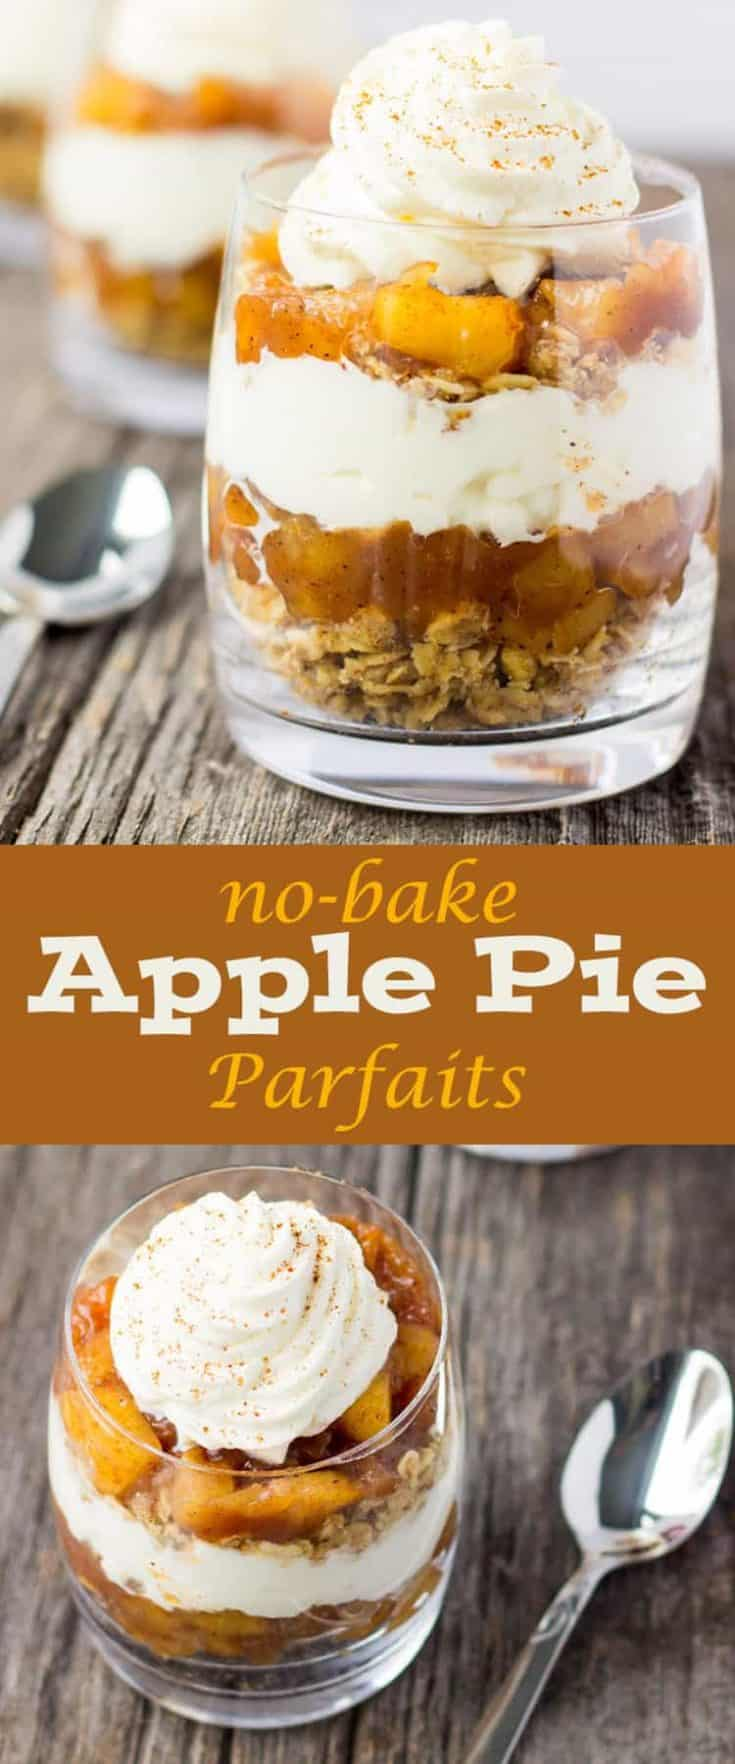 These NO-BAKE APPLE PIE PARFAITS are very much like the classic and much loved apple pie dessert, yet this recipe is no-bake and served in a cup. Simple and ready in no time, it's not too heavy yet very full of flavour! #applepierecipe #applerecipes #parfaitdesserts #parfait #parfaitrecipes